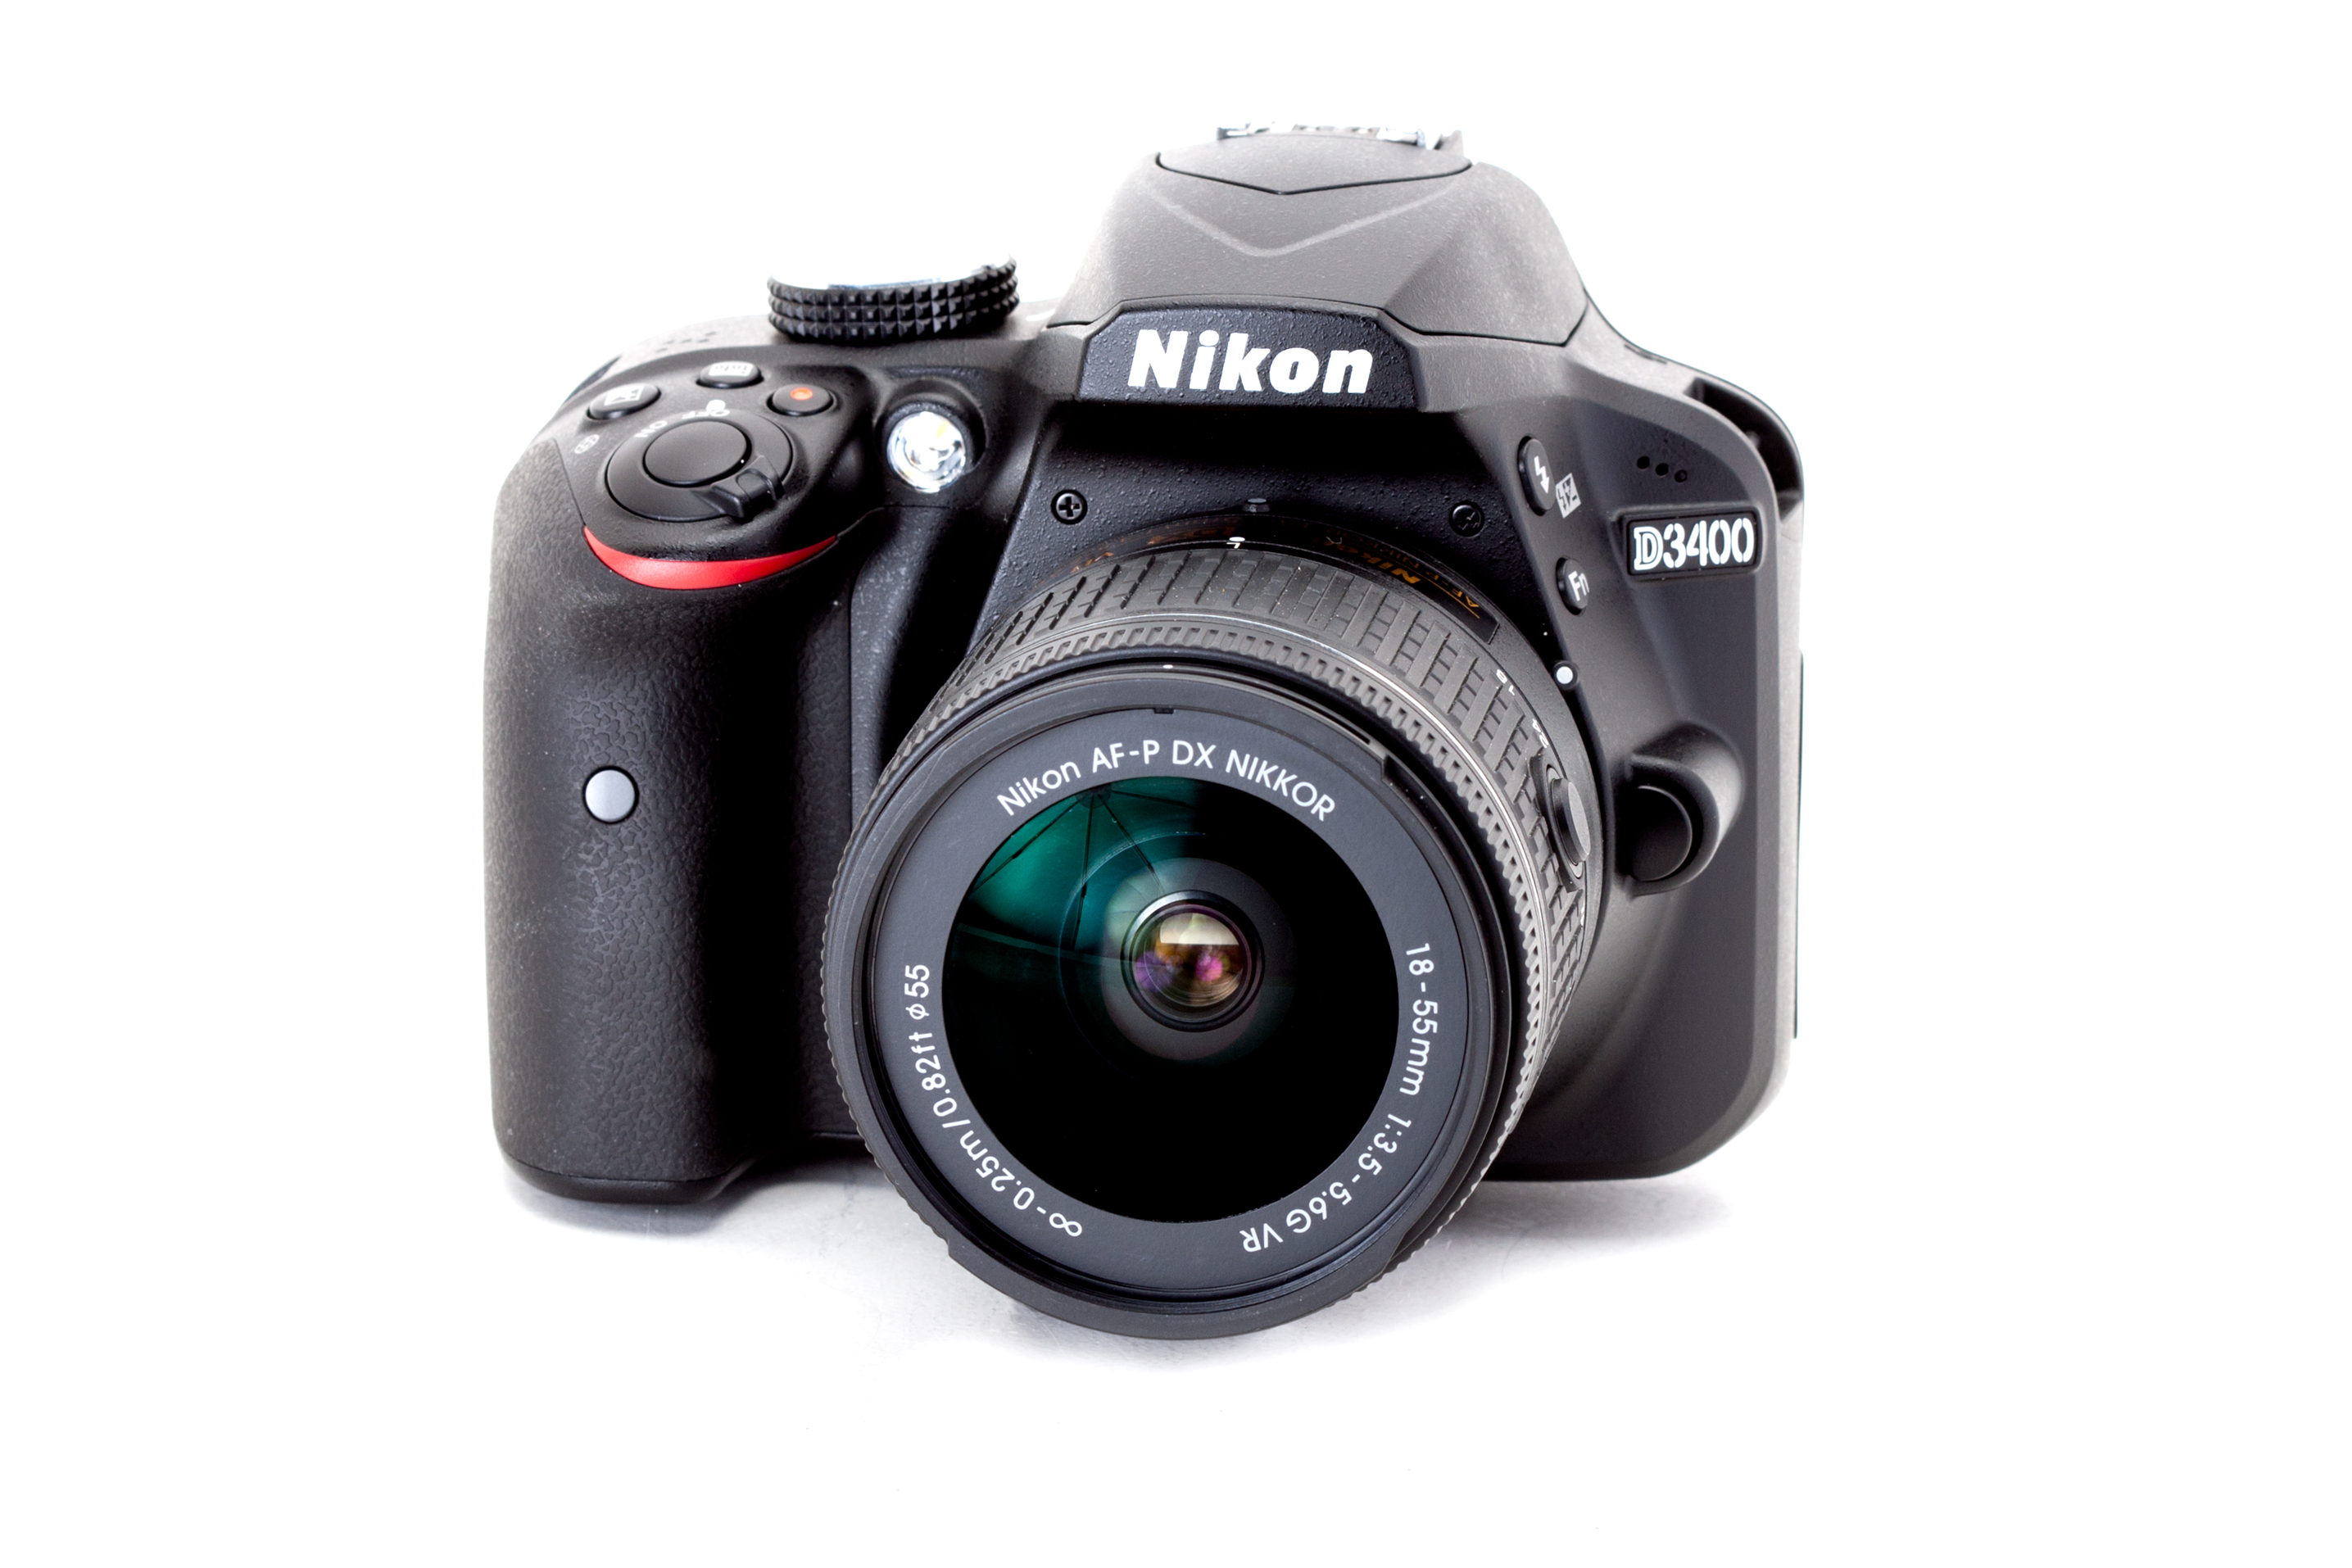 Nikon D3400 Review: Digital Photography Review